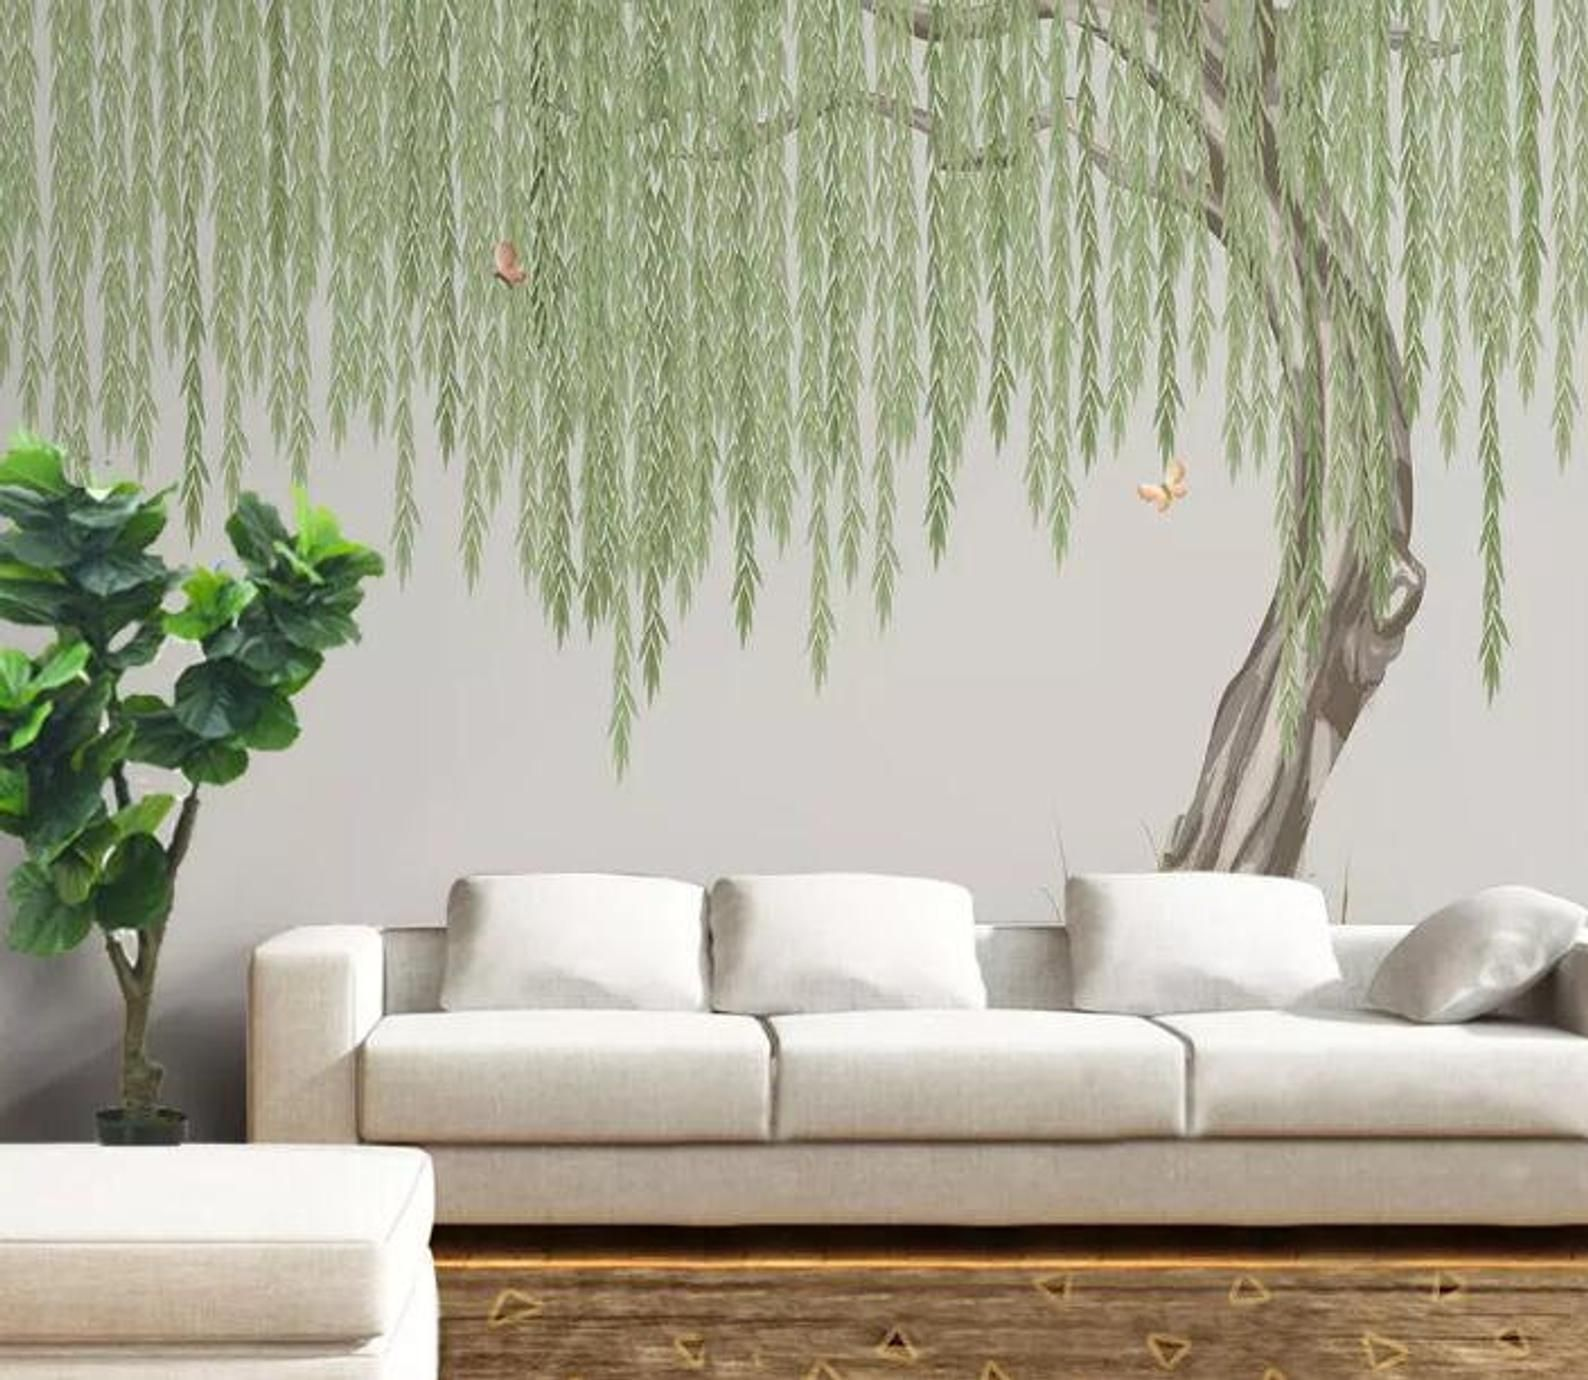 3d Willow Tree E221 Removable Wallpaper Self Adhesive Etsy In 2020 Tree Wall Murals Wall Wallpaper Nursery Mural